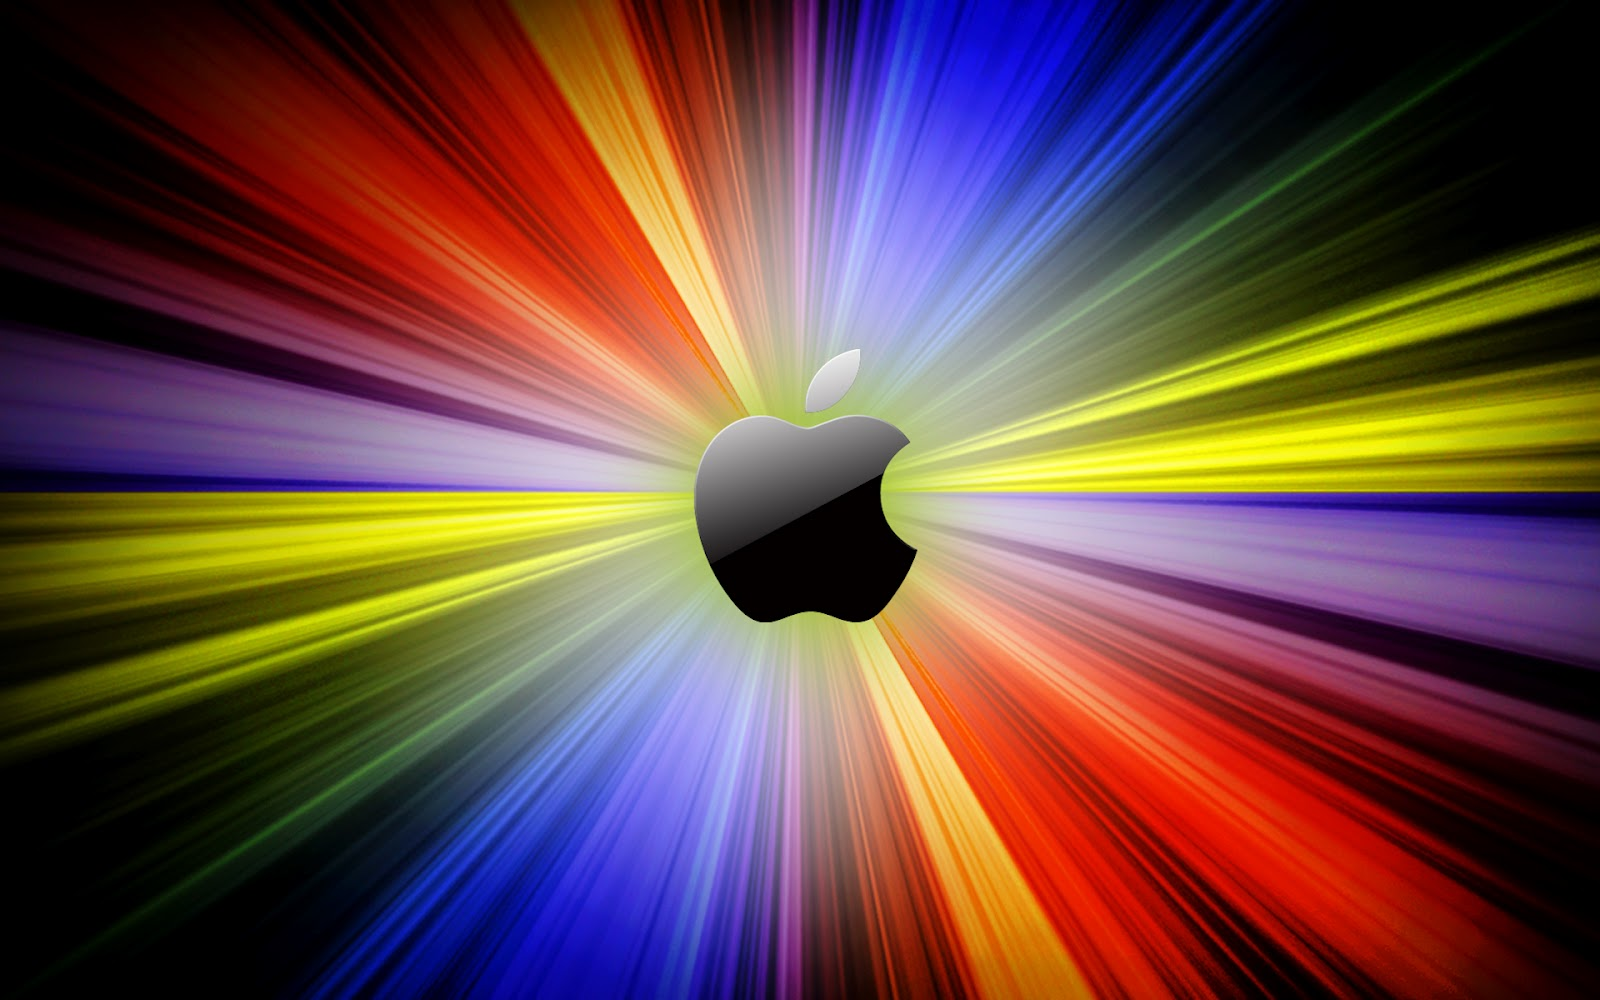 Wallpapers HD: Apple - Mac (30) Wallpapers (Fondo de Pantalla) HD - Poster, Manzana